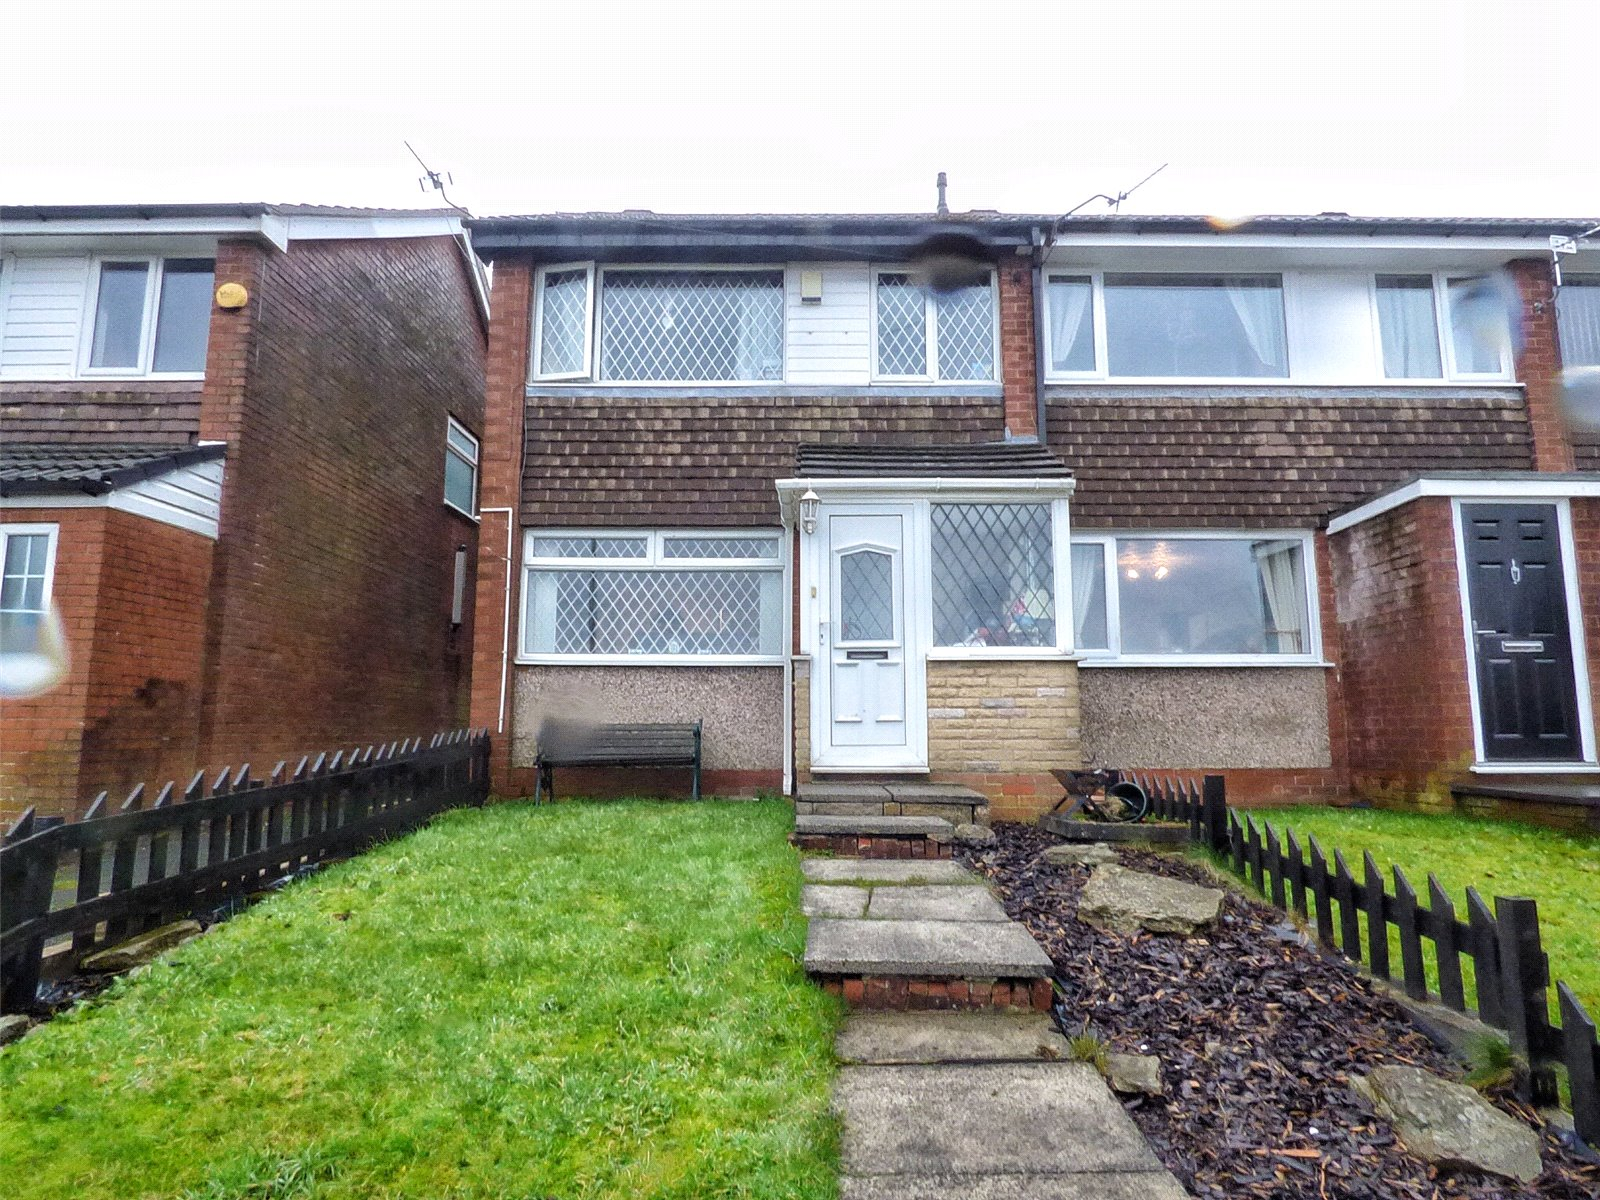 3 Bedrooms End Of Terrace House for sale in Parkgate Way, Shaw, Oldham, Greater Manchester, OL2